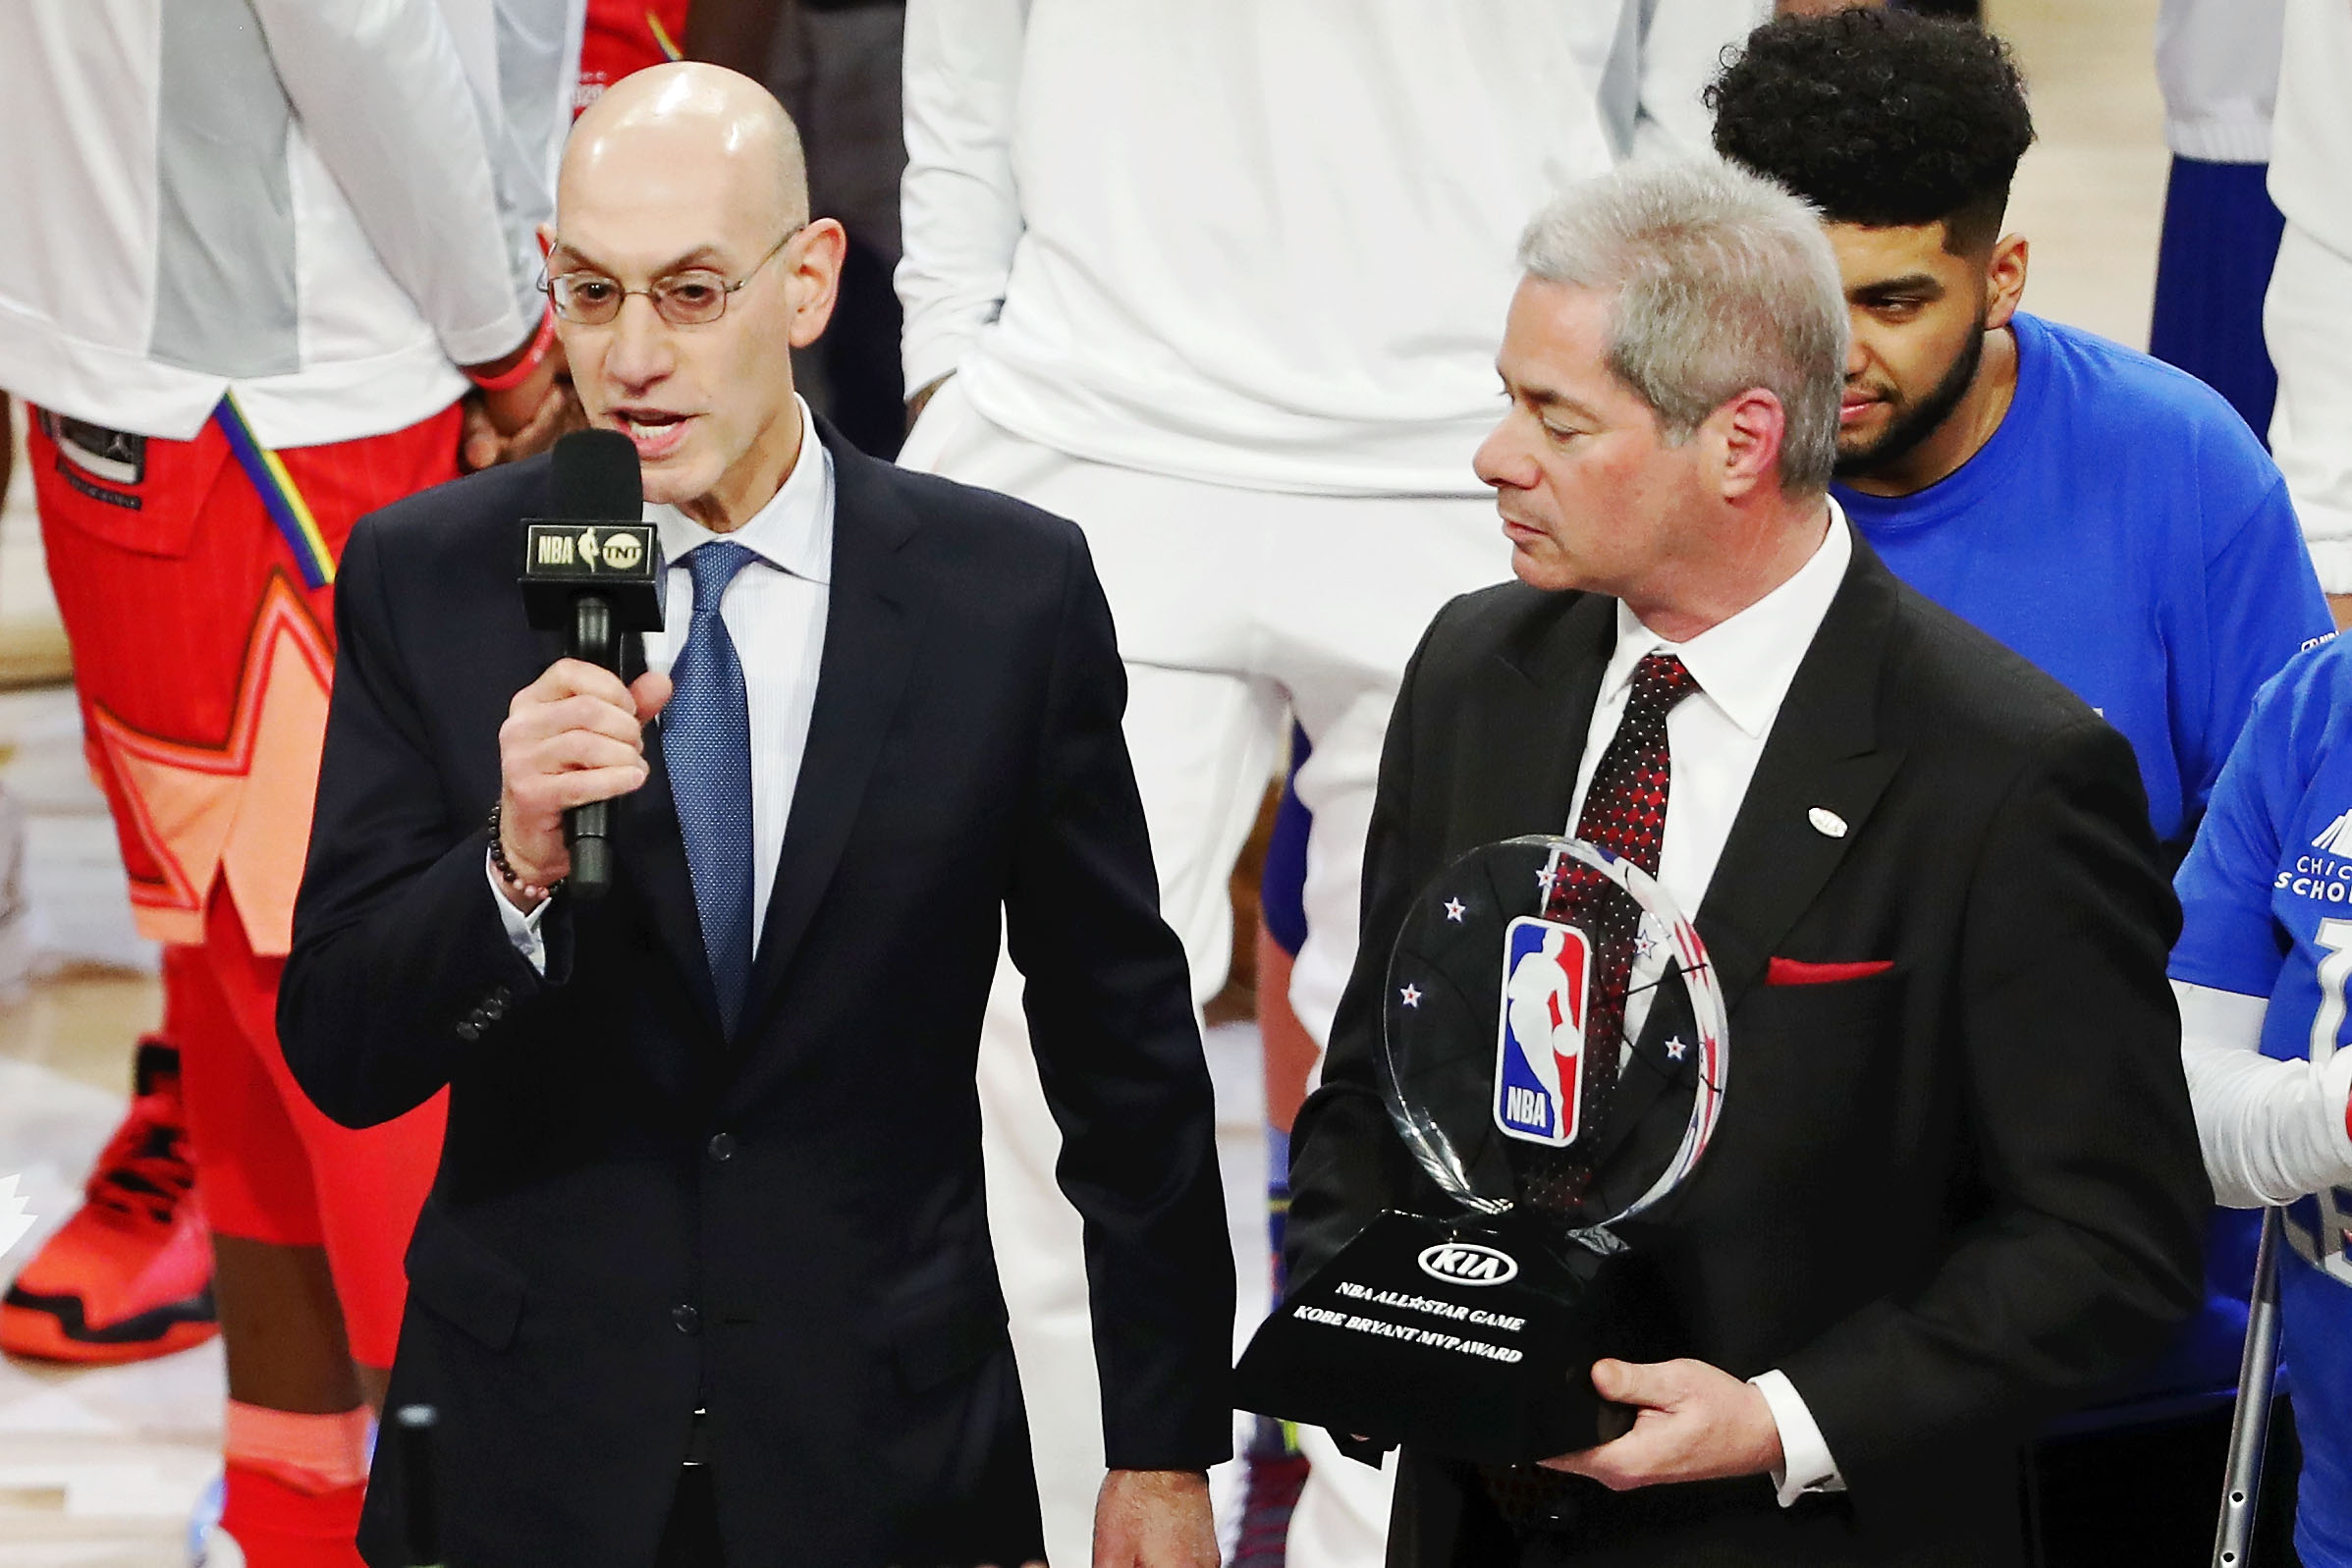 NBA commissioner Adam Silver announces the winner of the Kobe Bryant MVP award as Team LeBron forward Kawhi Leonard of the LA Clippers after the 2020 NBA All Star Game at United Center.